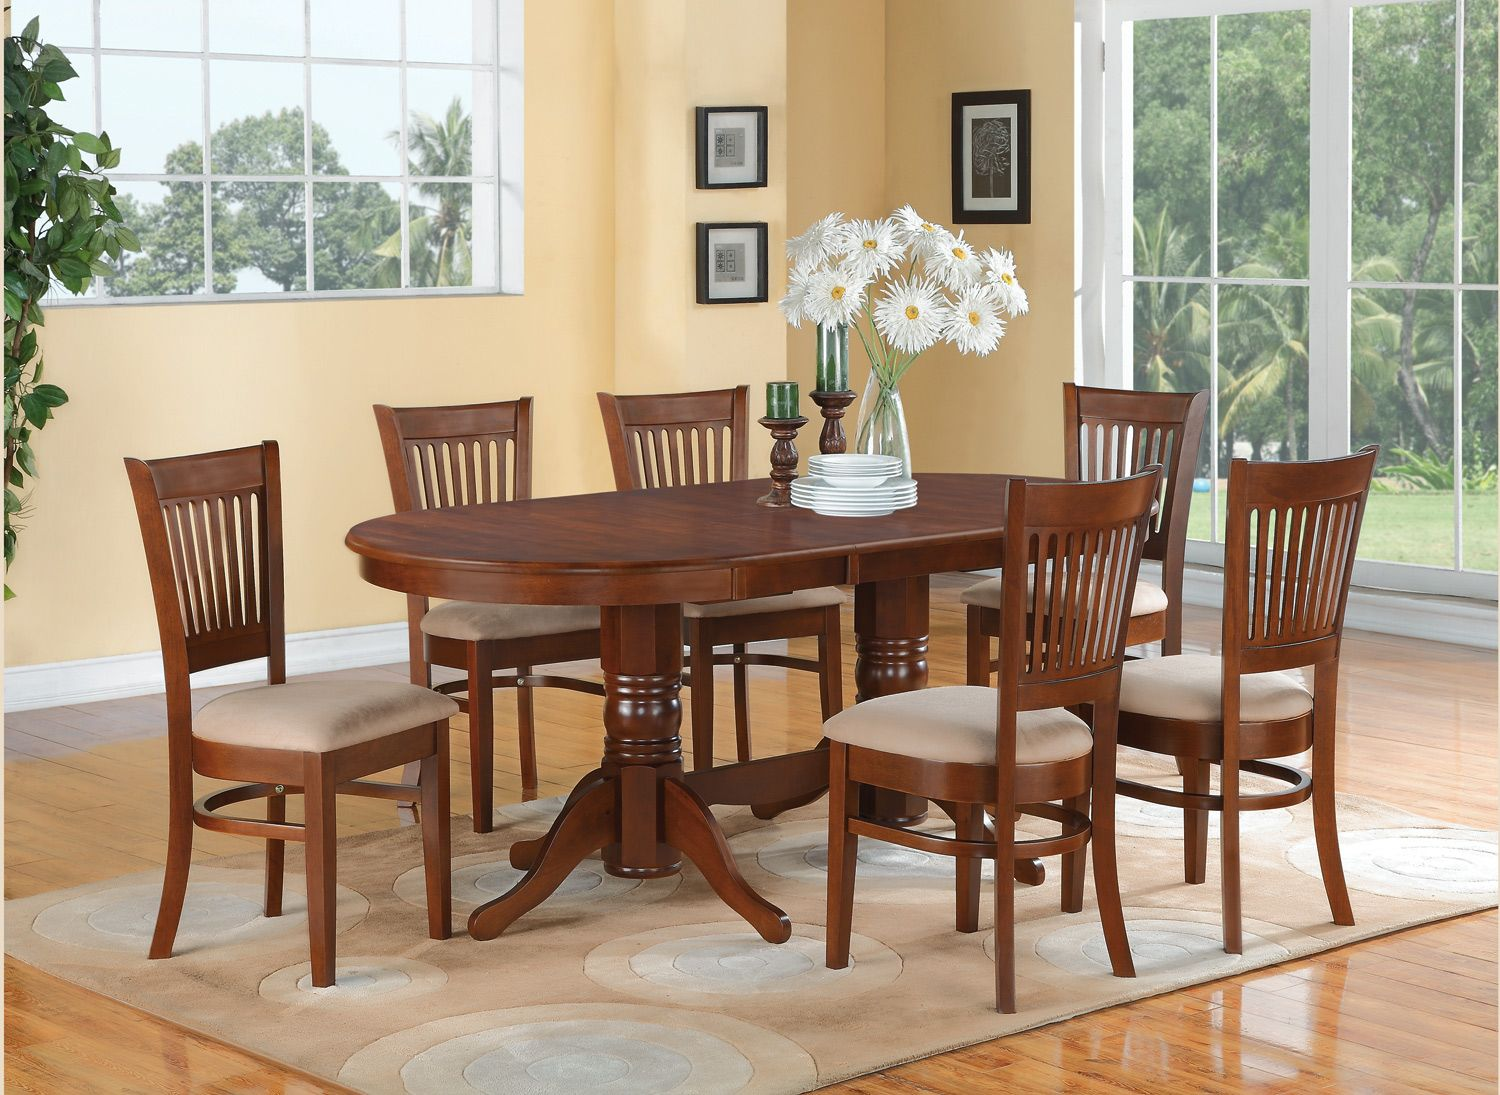 Items in DiningFurniture store on eBay   Oval dining room table ...